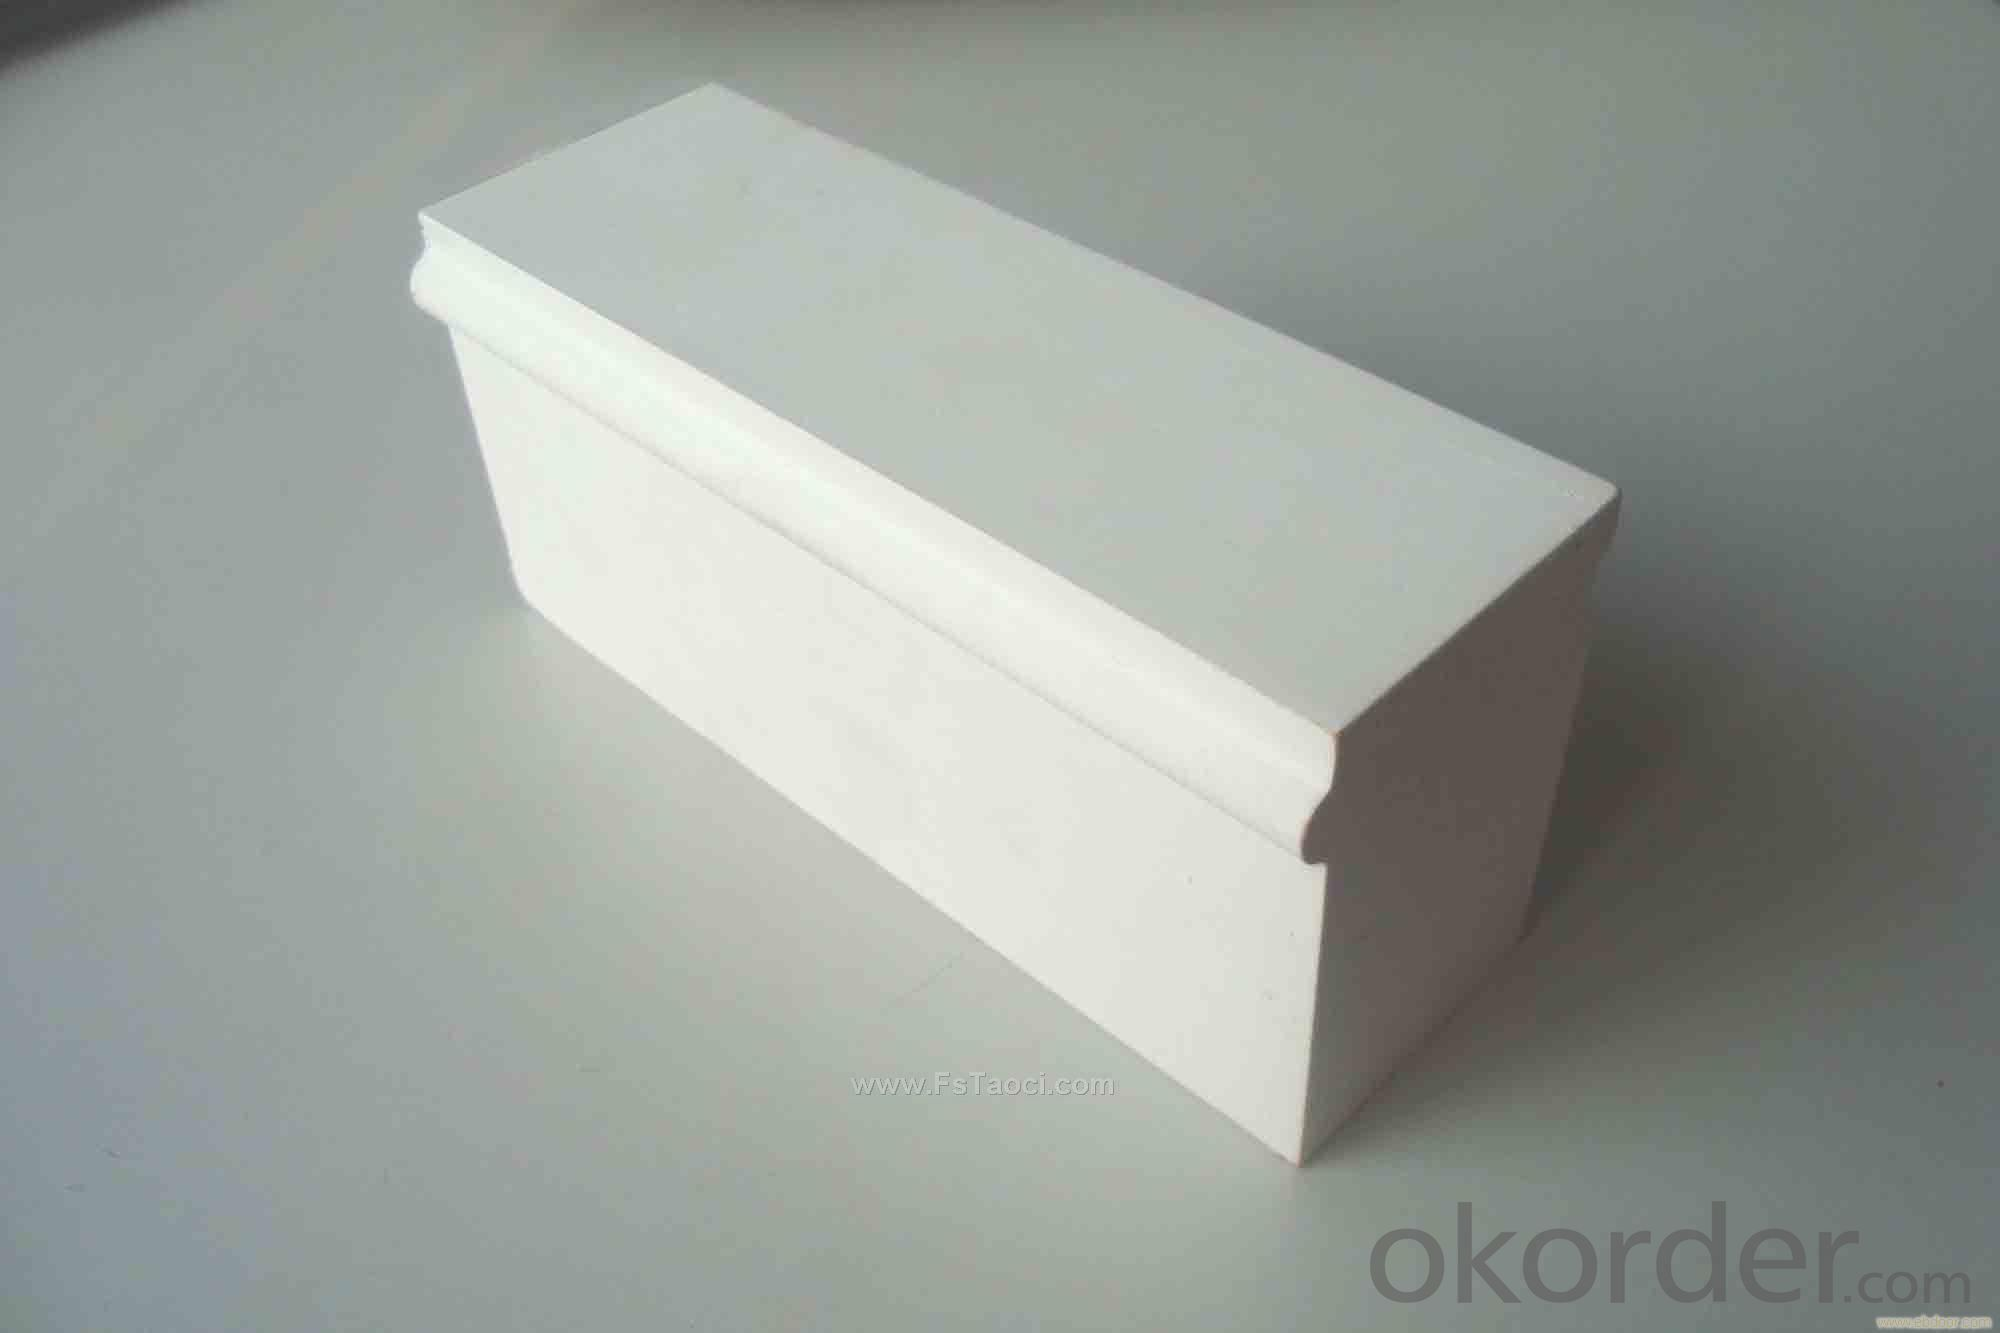 Best quality lightweight corundum mullite refractory bricks